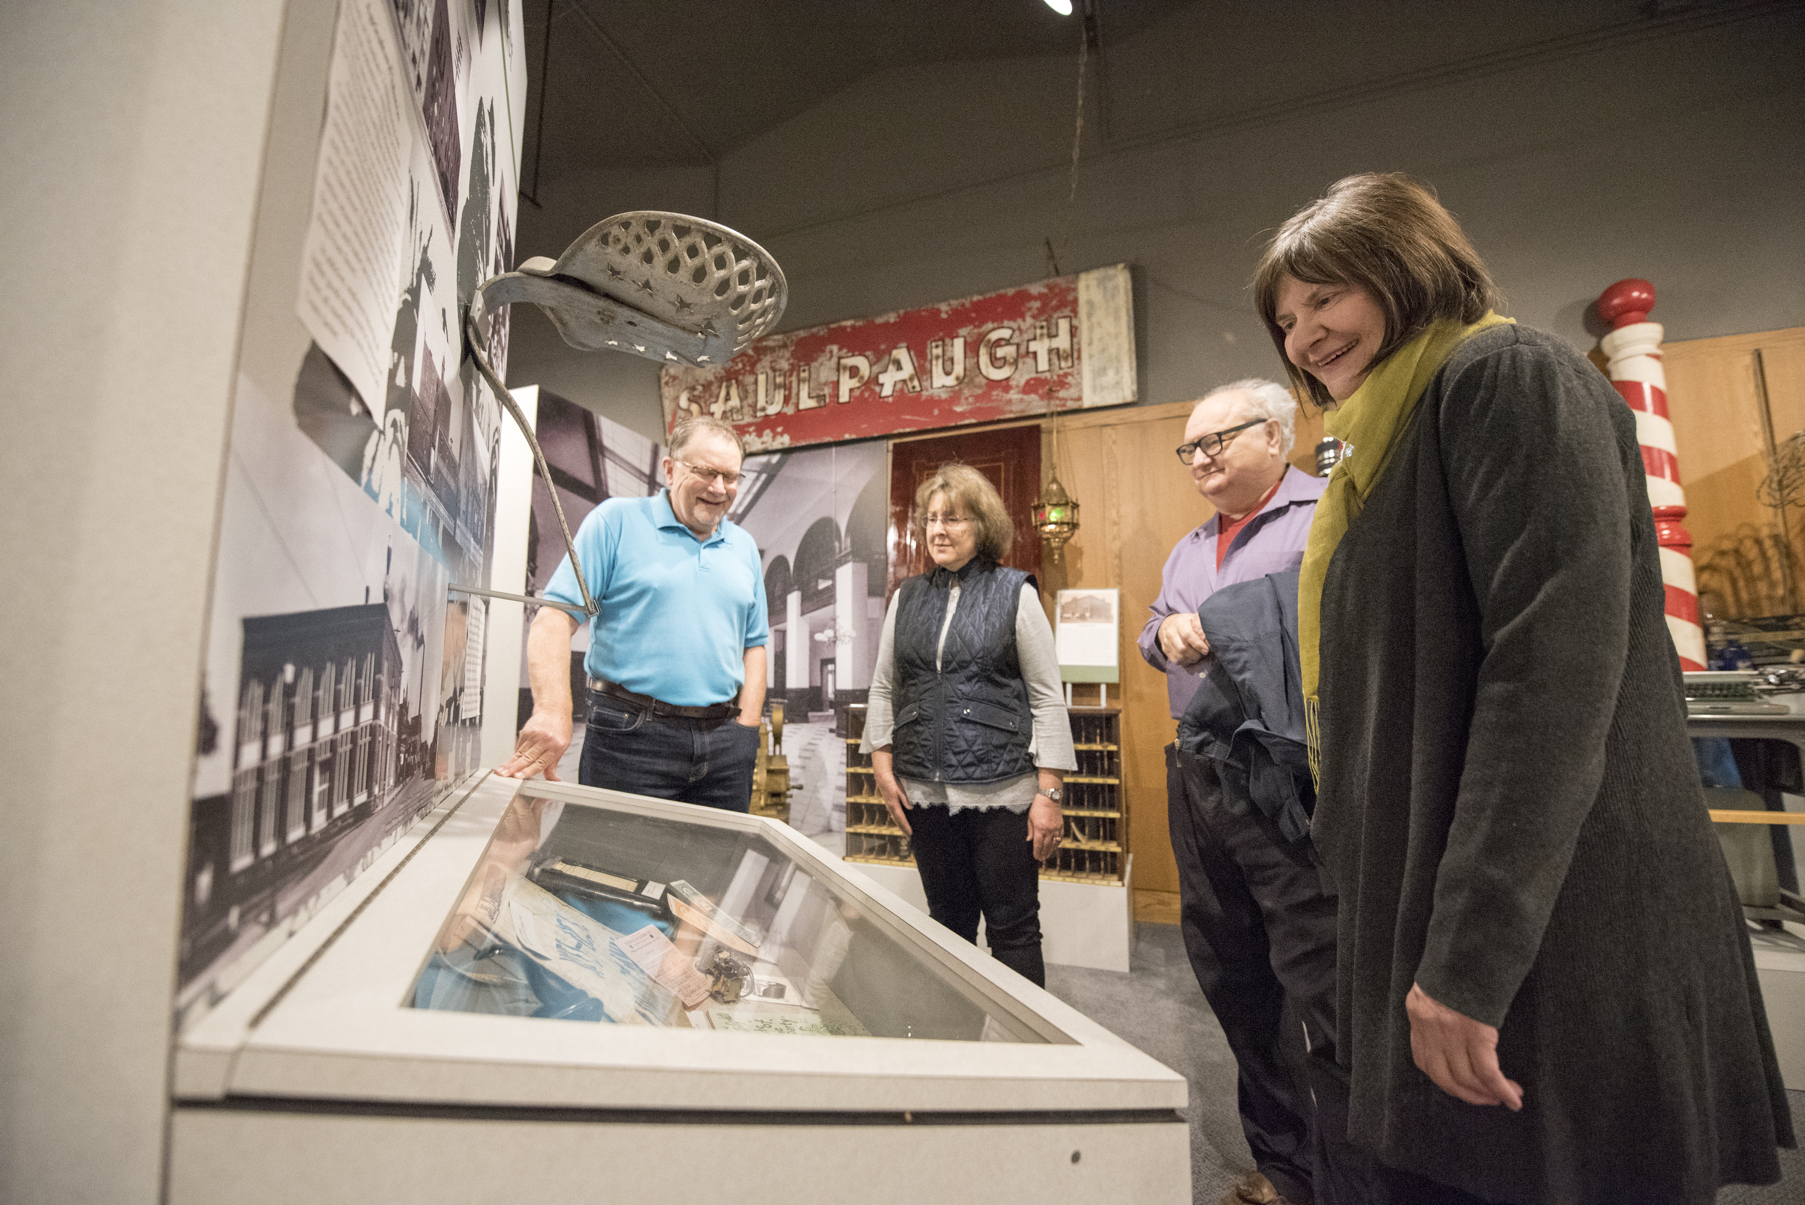 People standing in the museum looking at a display